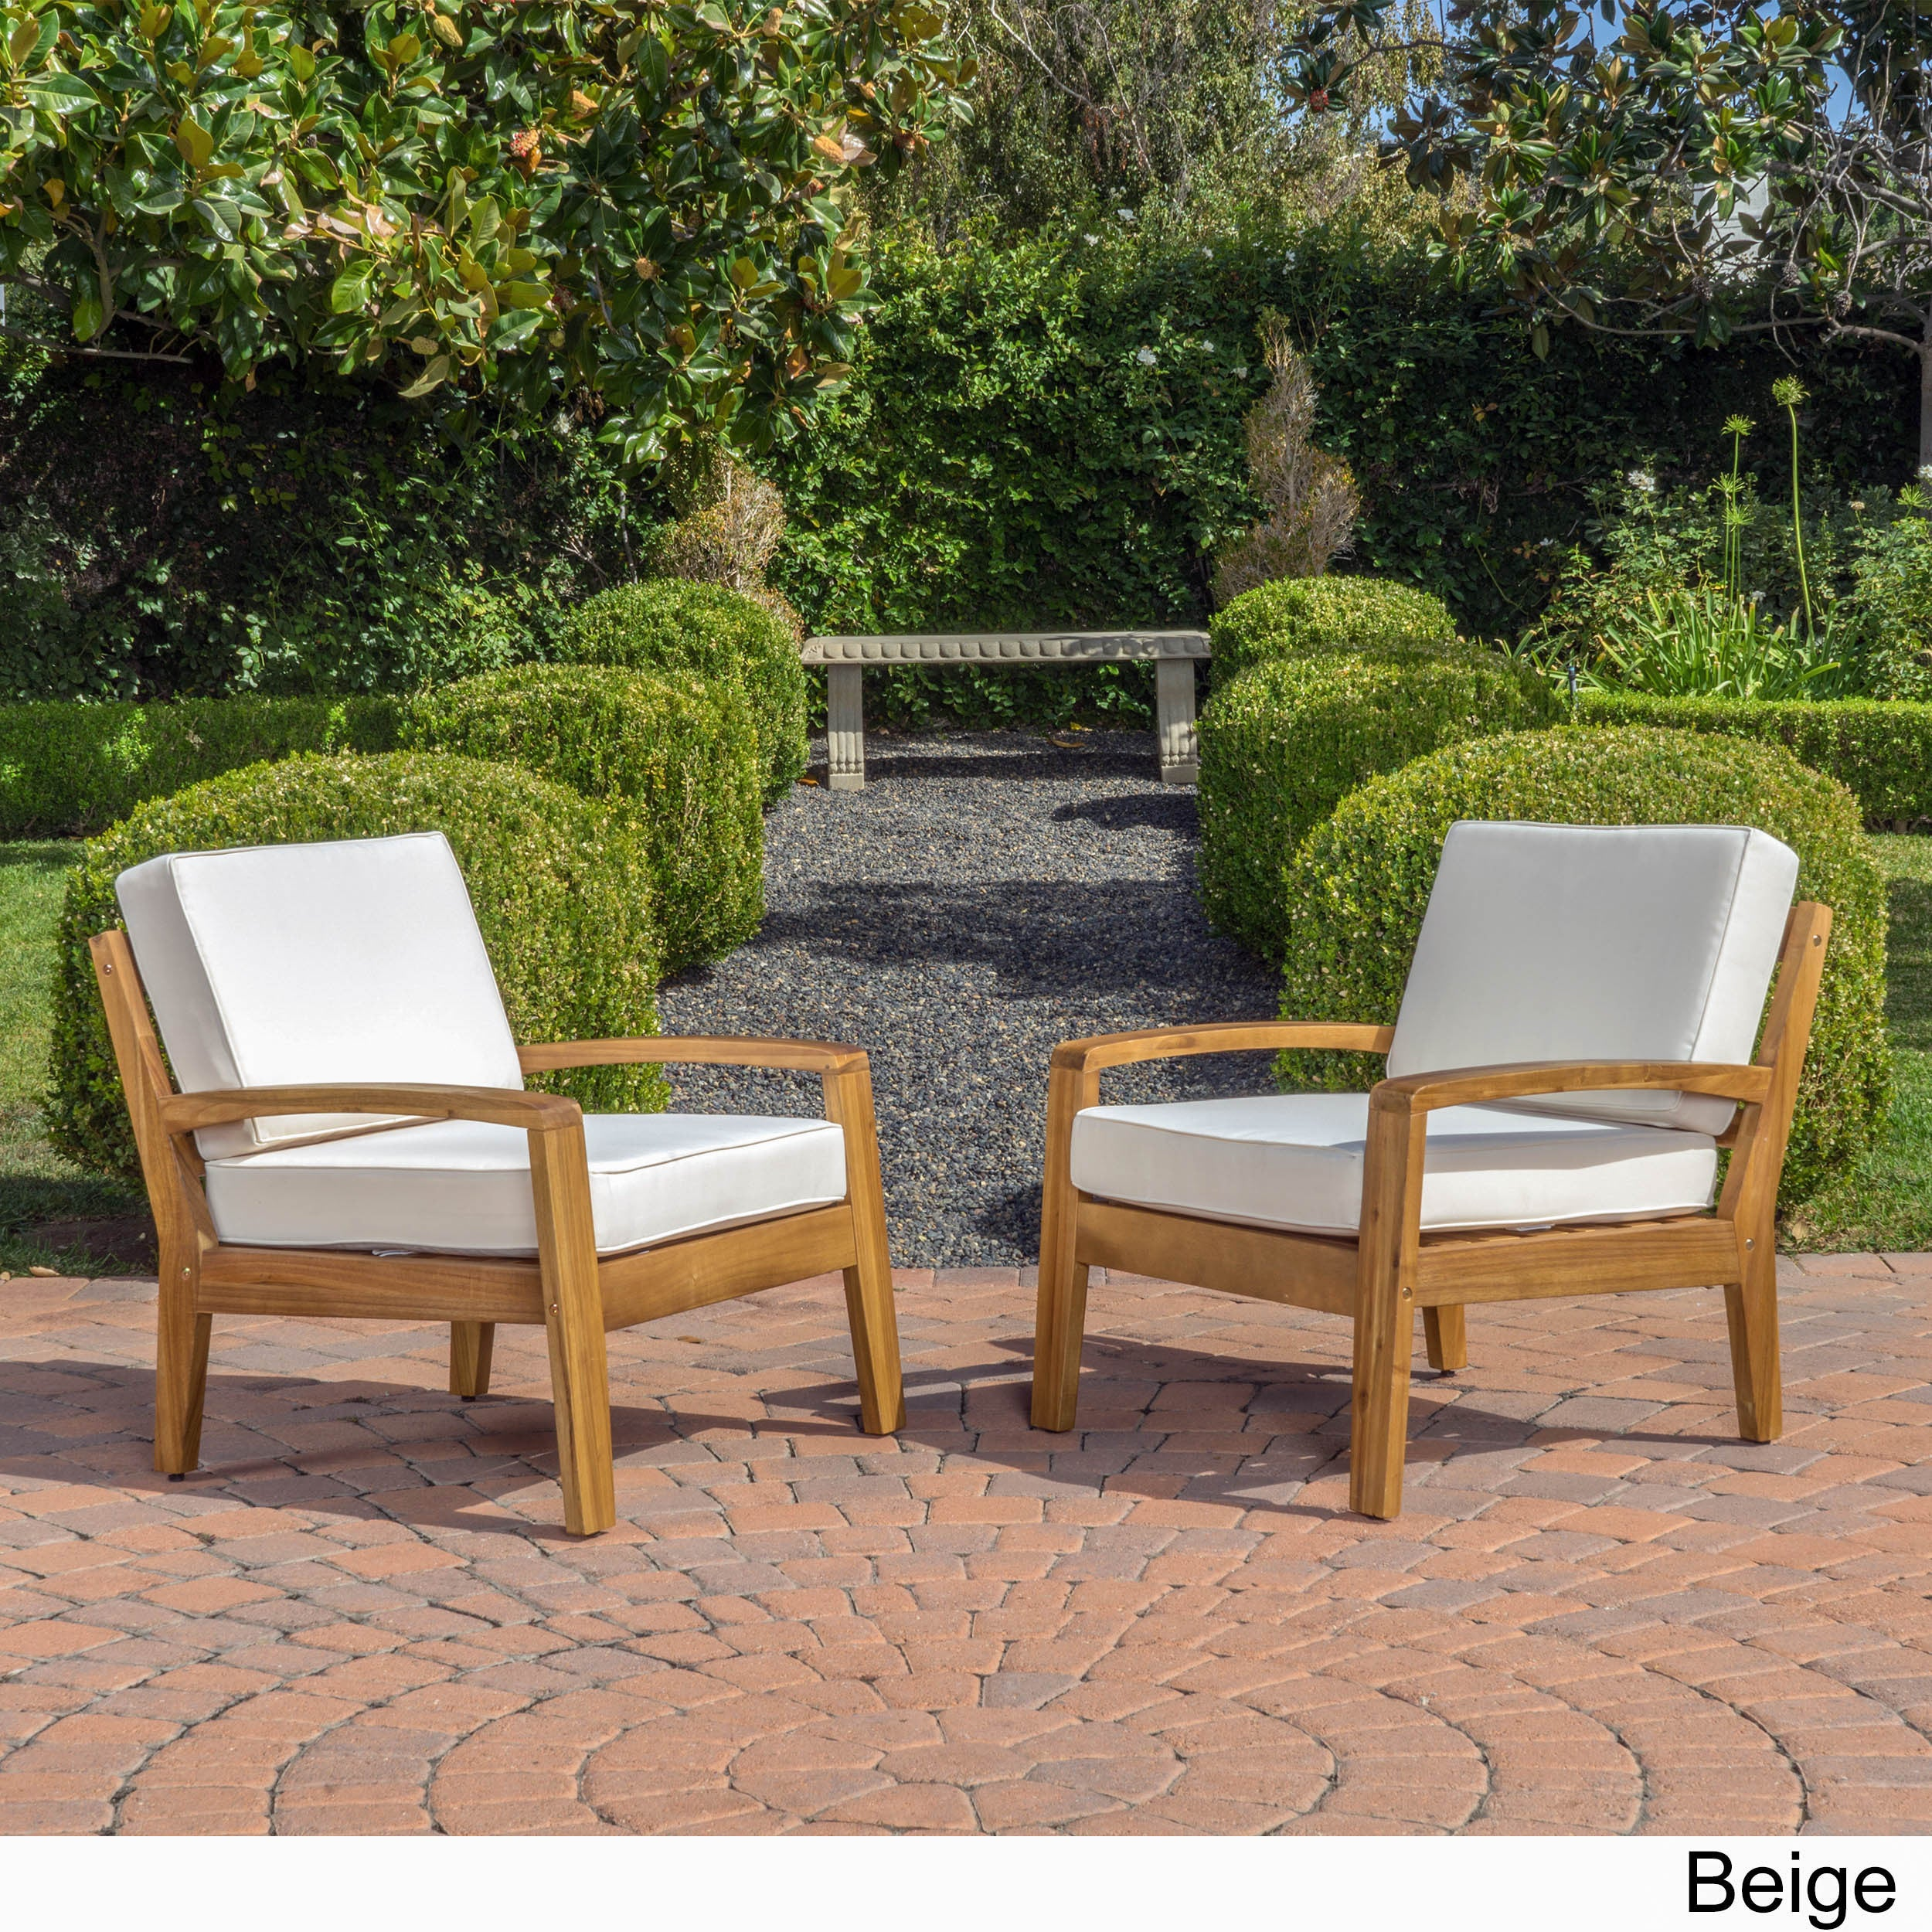 Wood Patio Furniture Outdoor Seating Dining For Less Overstockcom